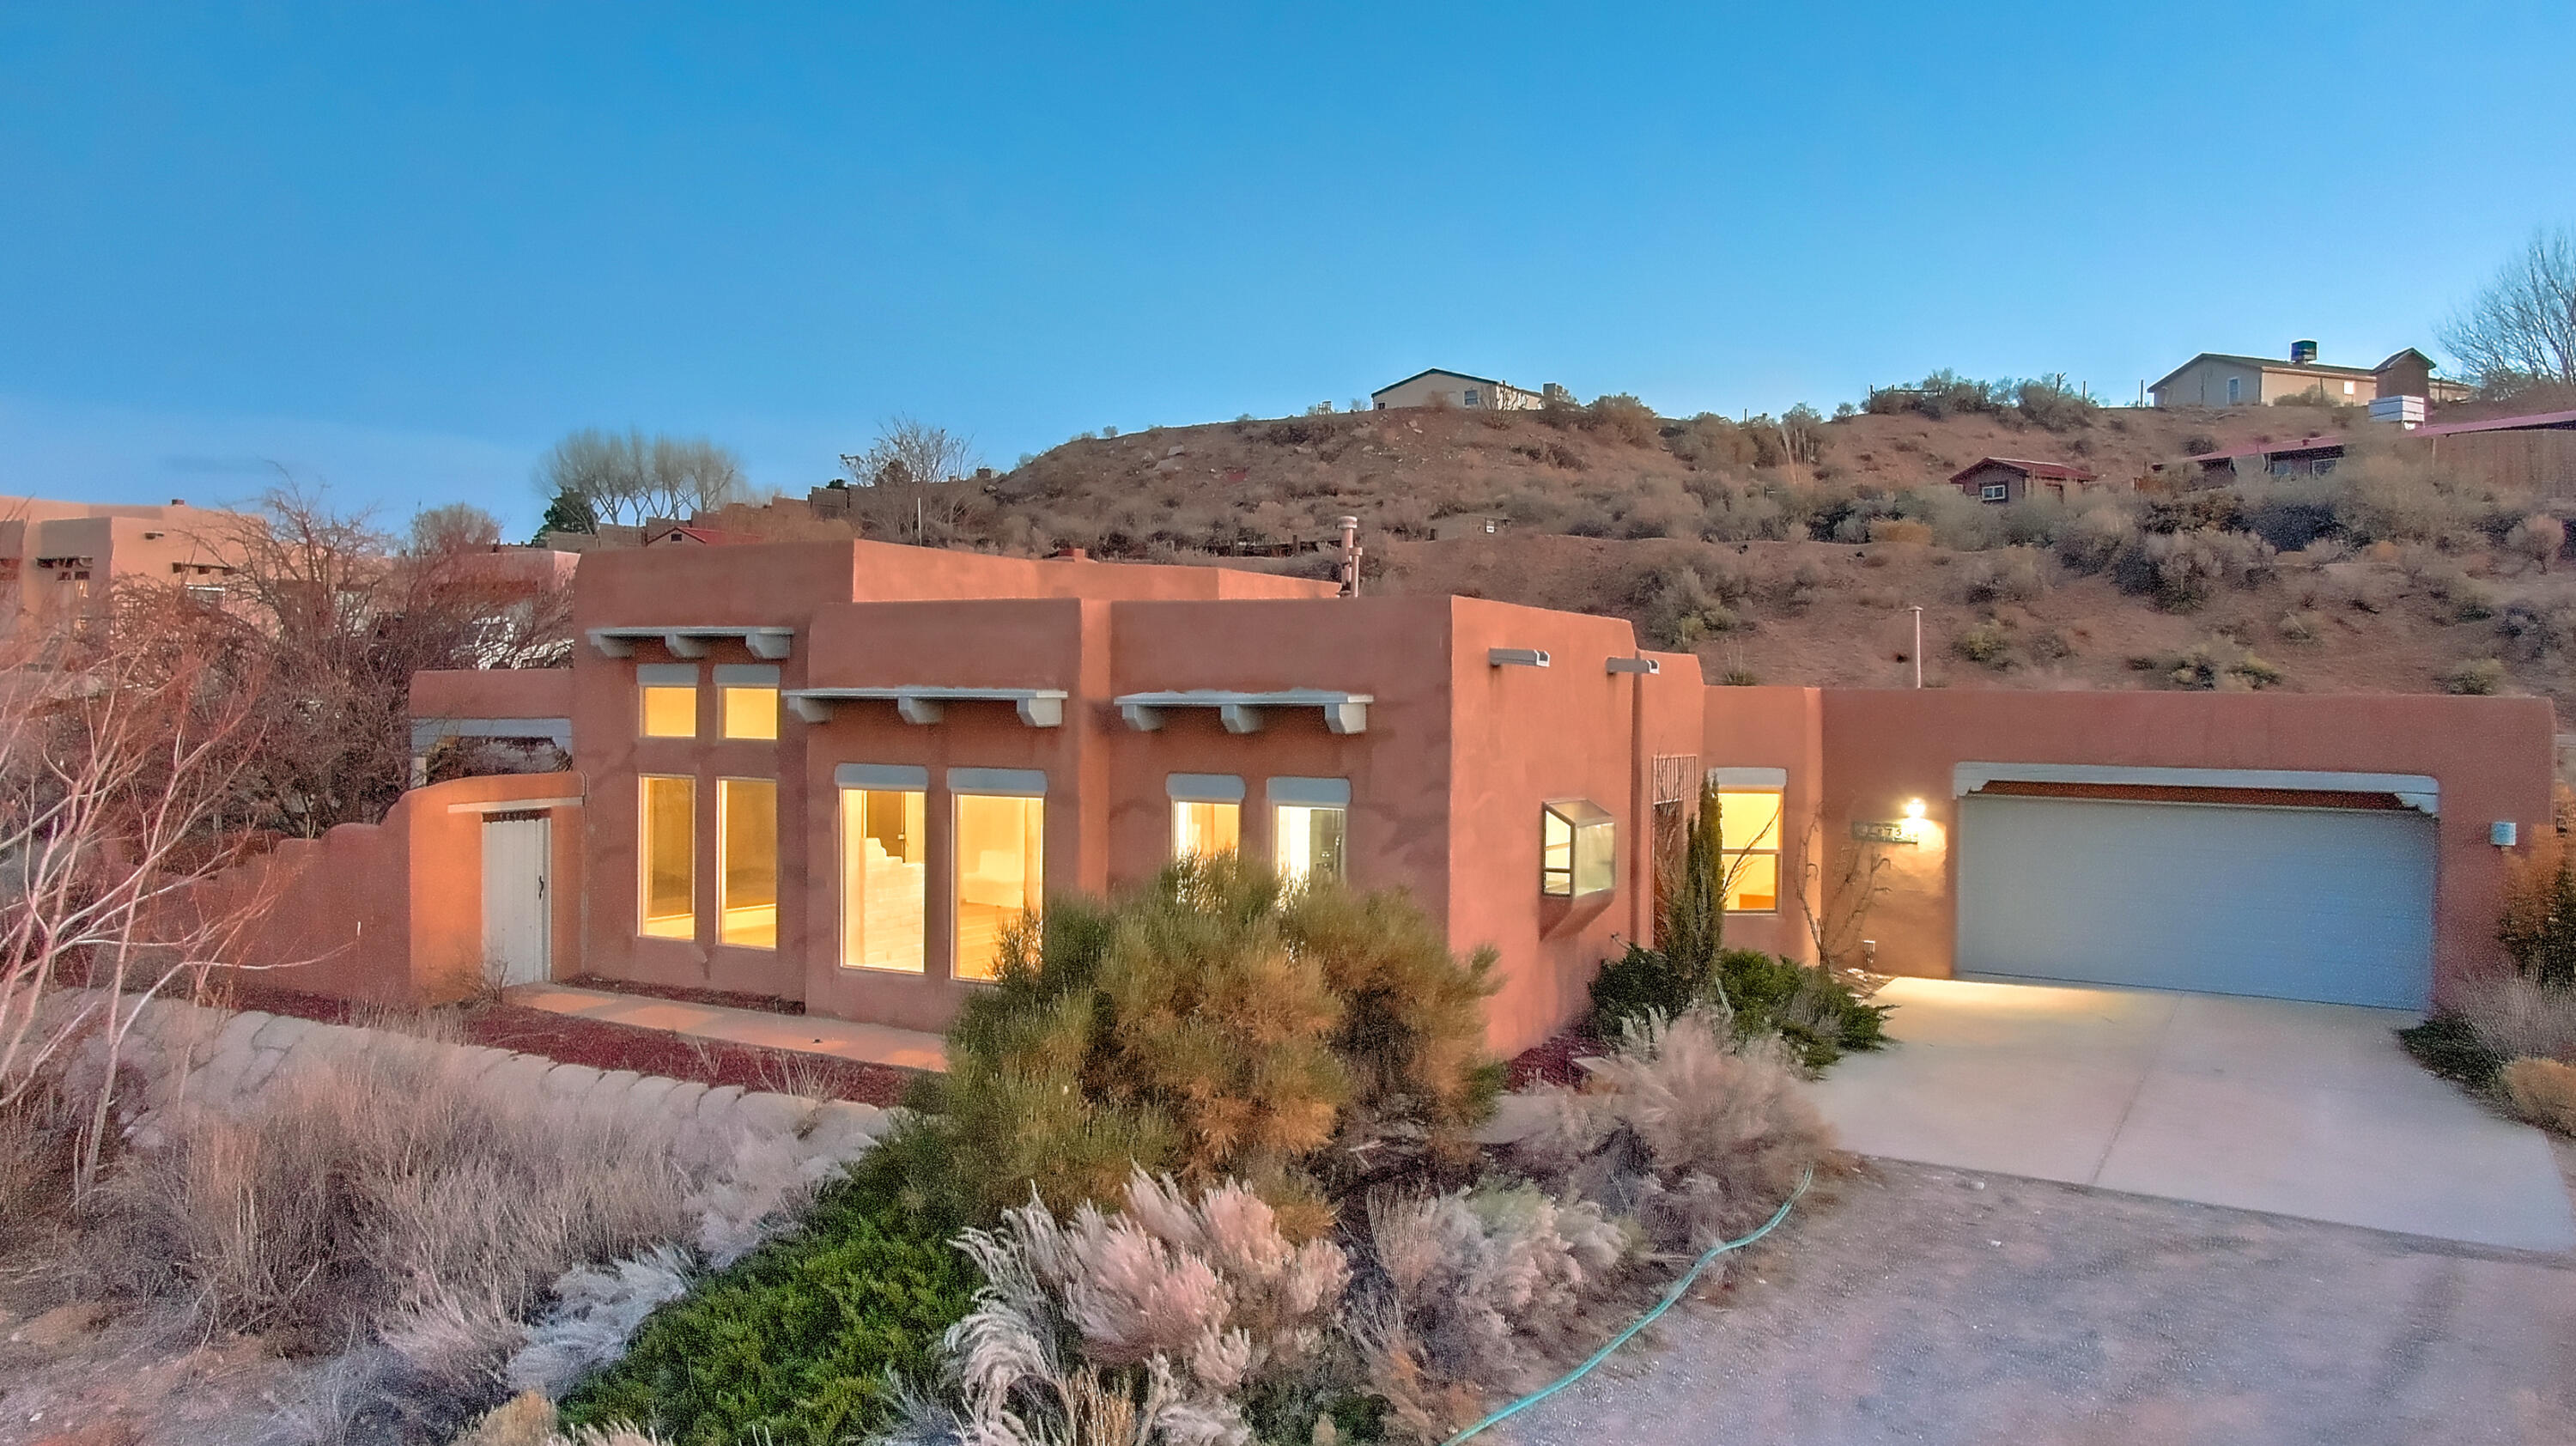 This beautiful Southwest style Corrales property is ready for a new owner. With over $12k in Jan 2021 improvements it is sure to please. Views of the Sandias are breathtaking. The privacy of this home is unparalleled.  Classic southwest style adobe and luxury wood viga ceilings capture the essence of the high desert.